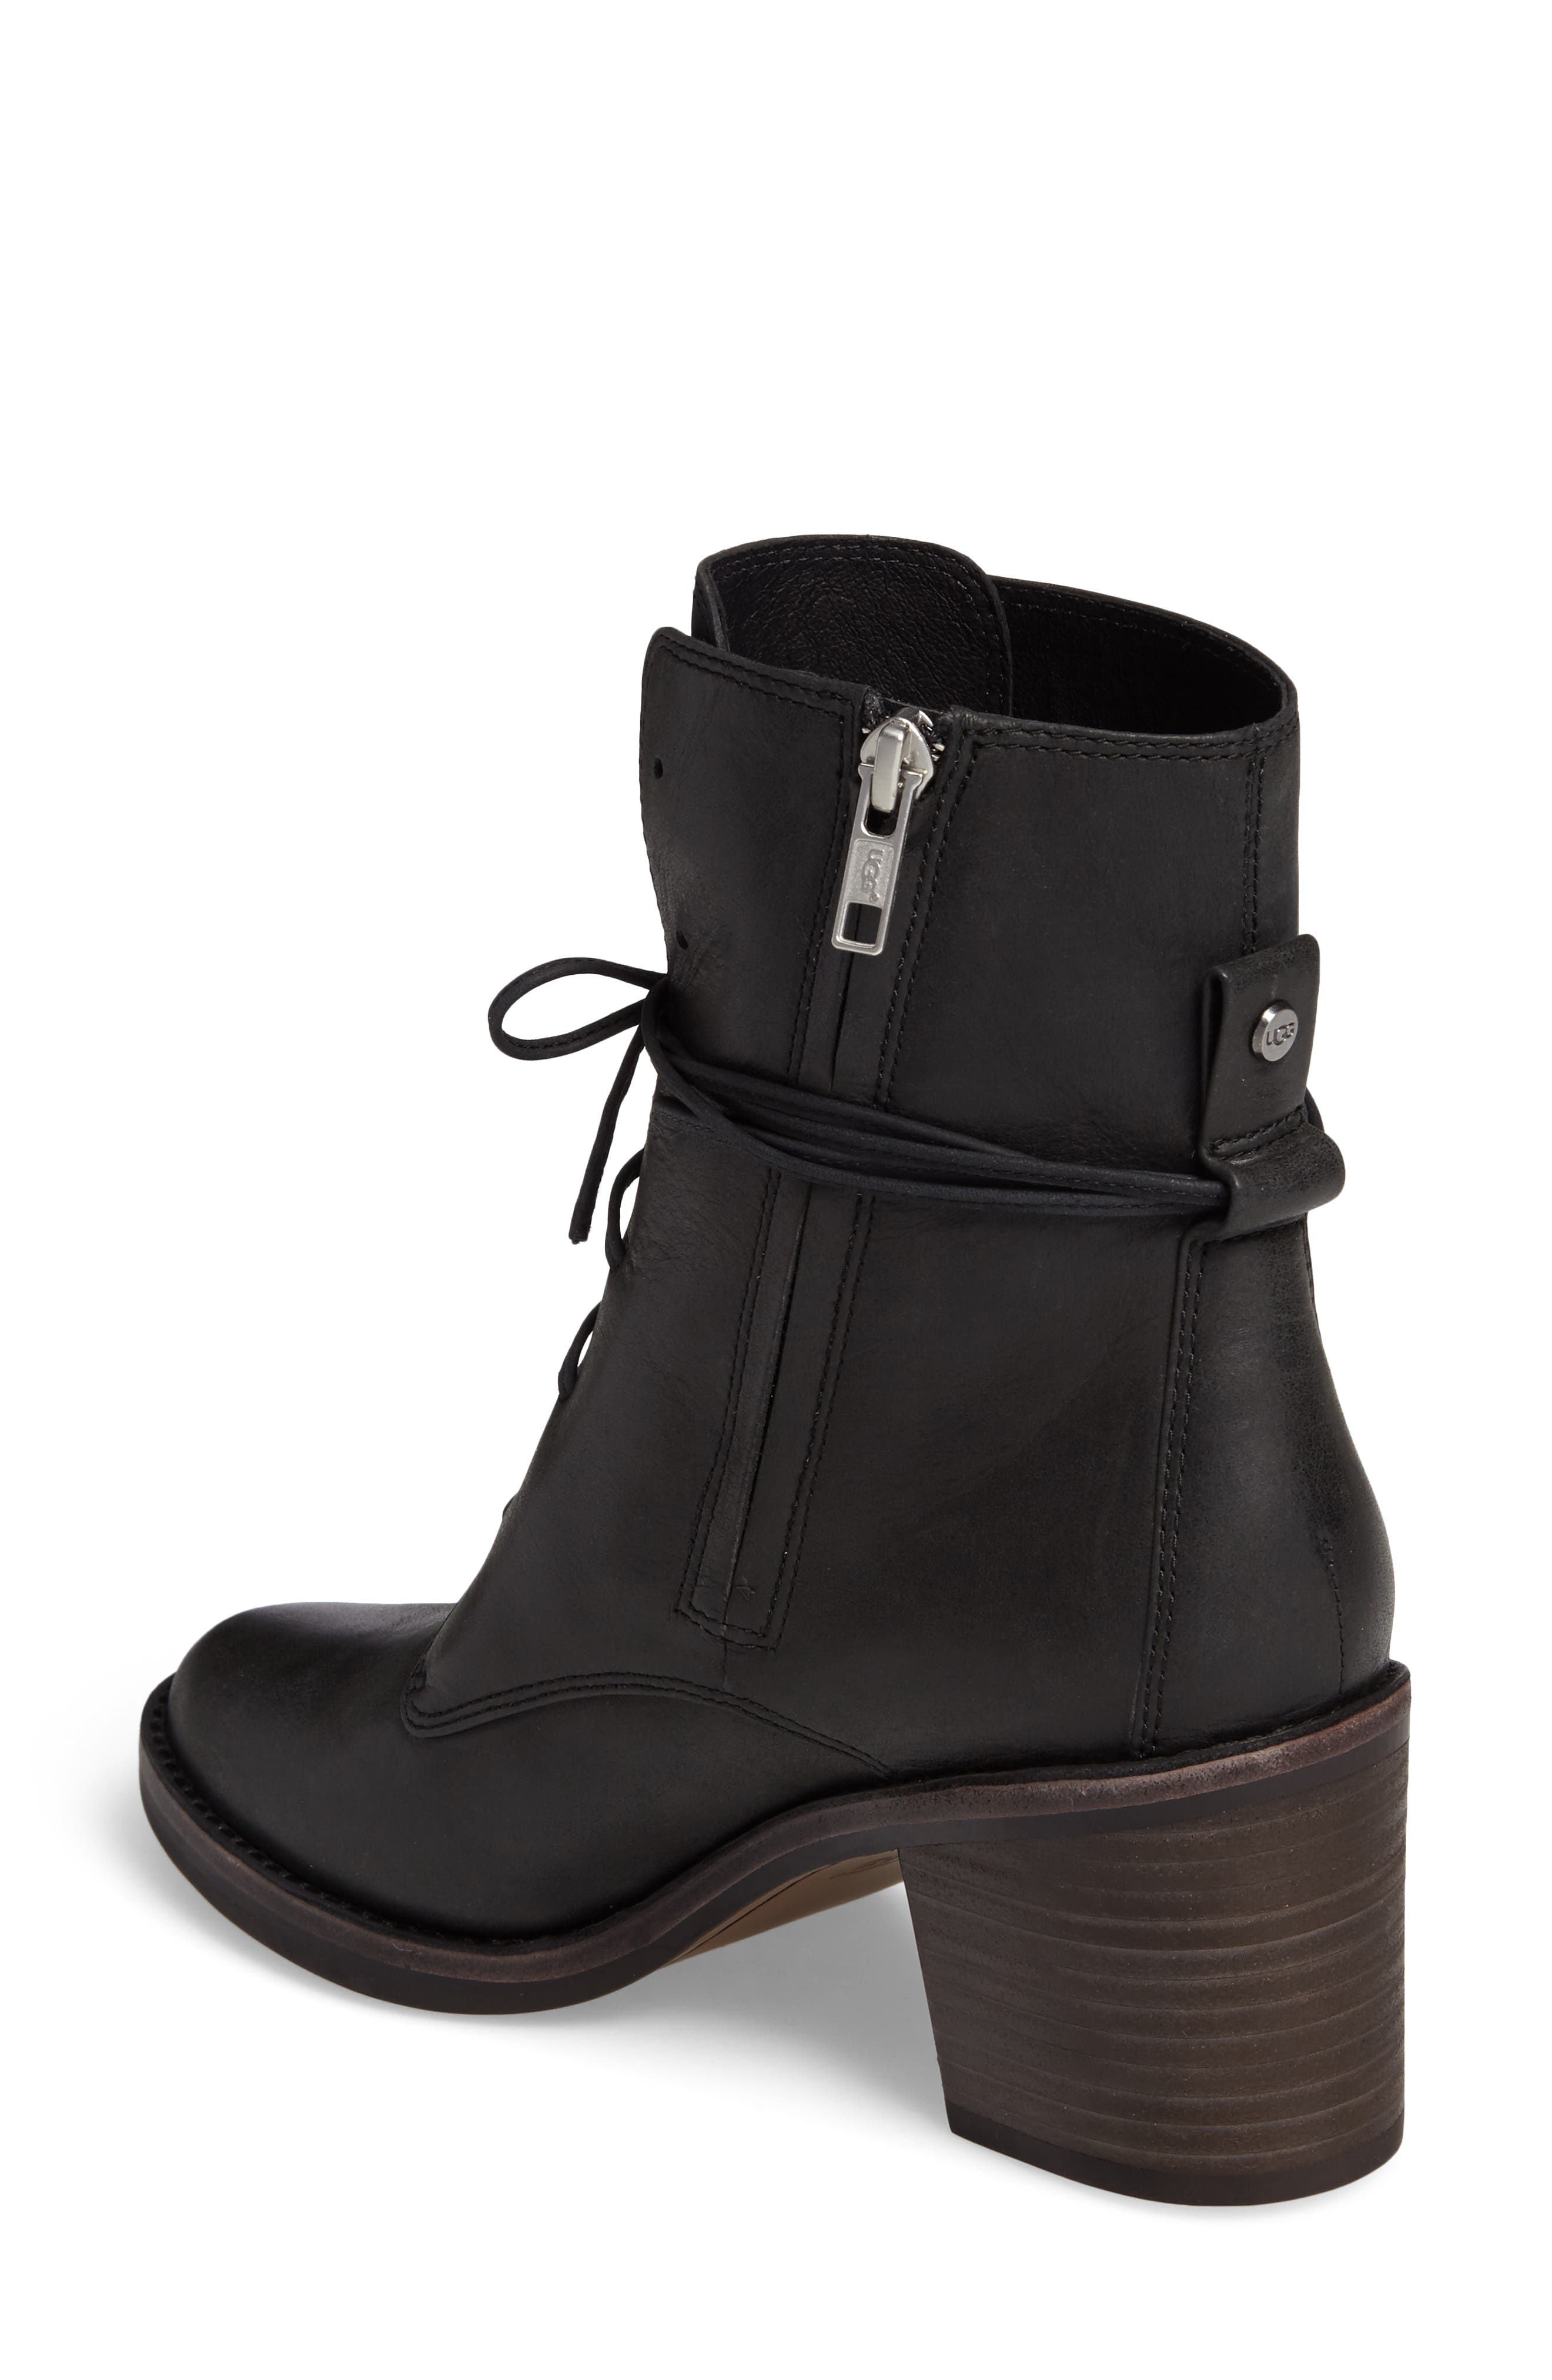 Oriana Lace-Up Boot,                             Alternate thumbnail 2, color,                             Black Leather